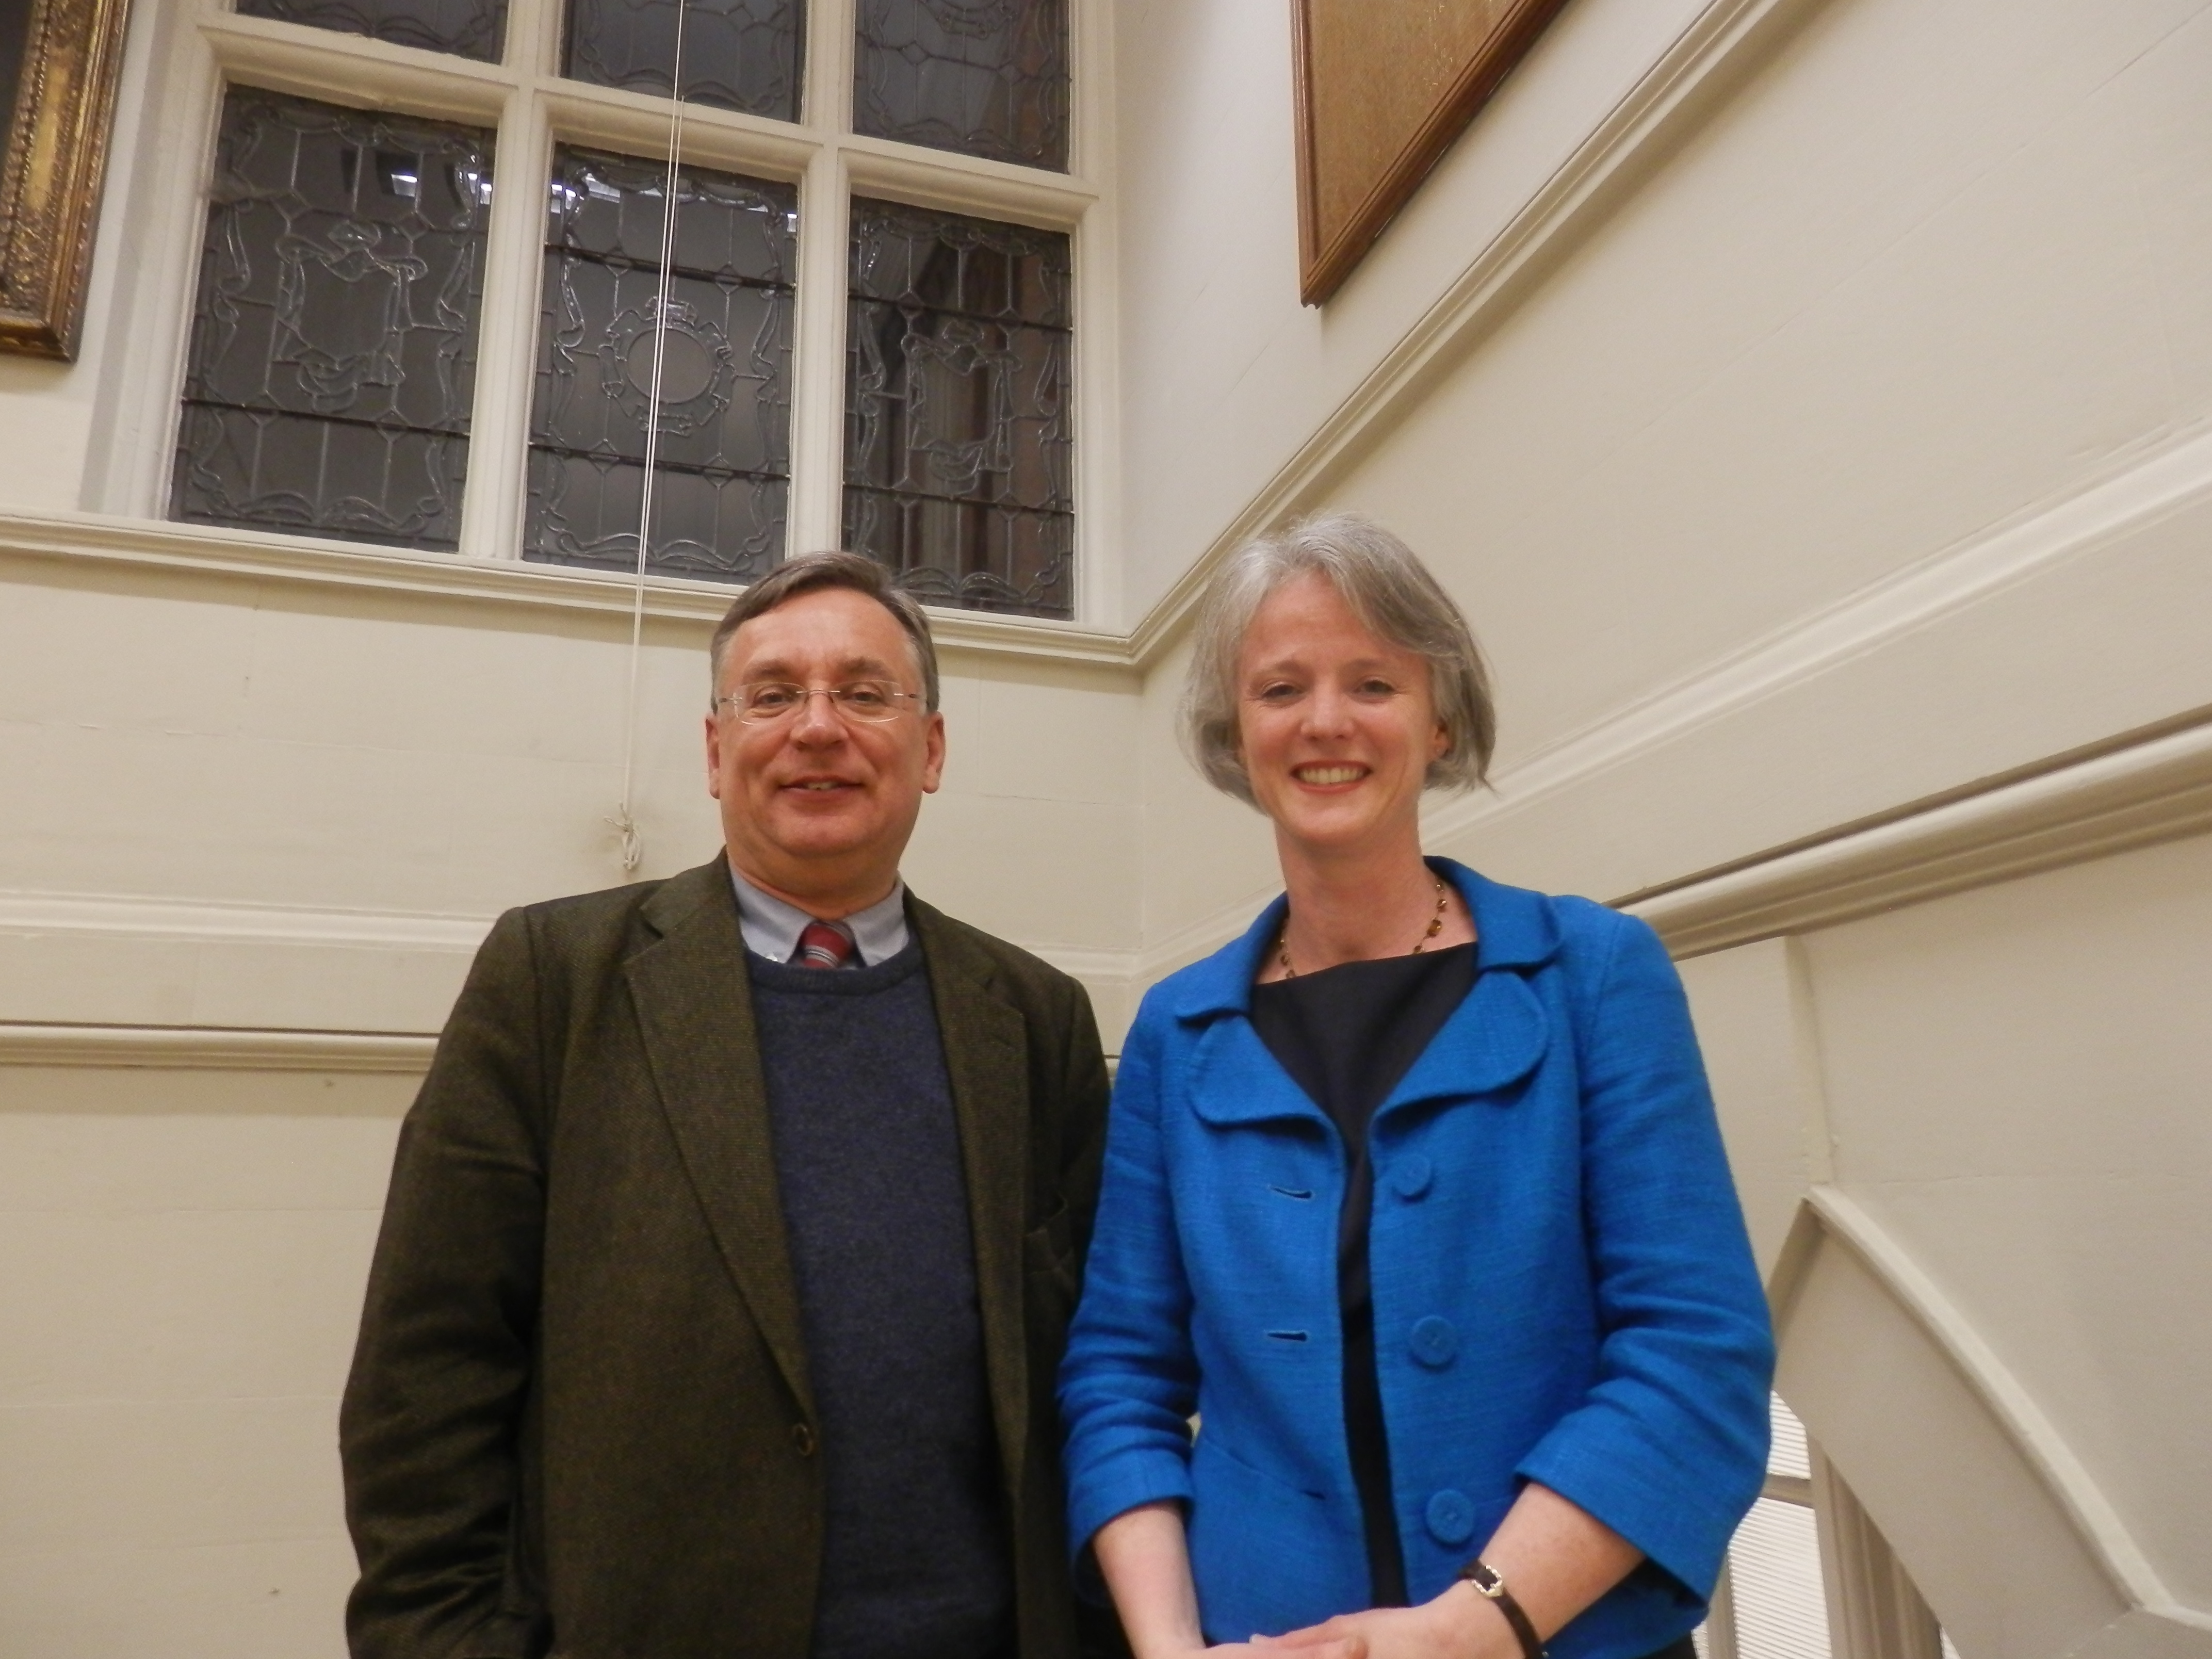 Andrew Dismore AM and Sophie Linden